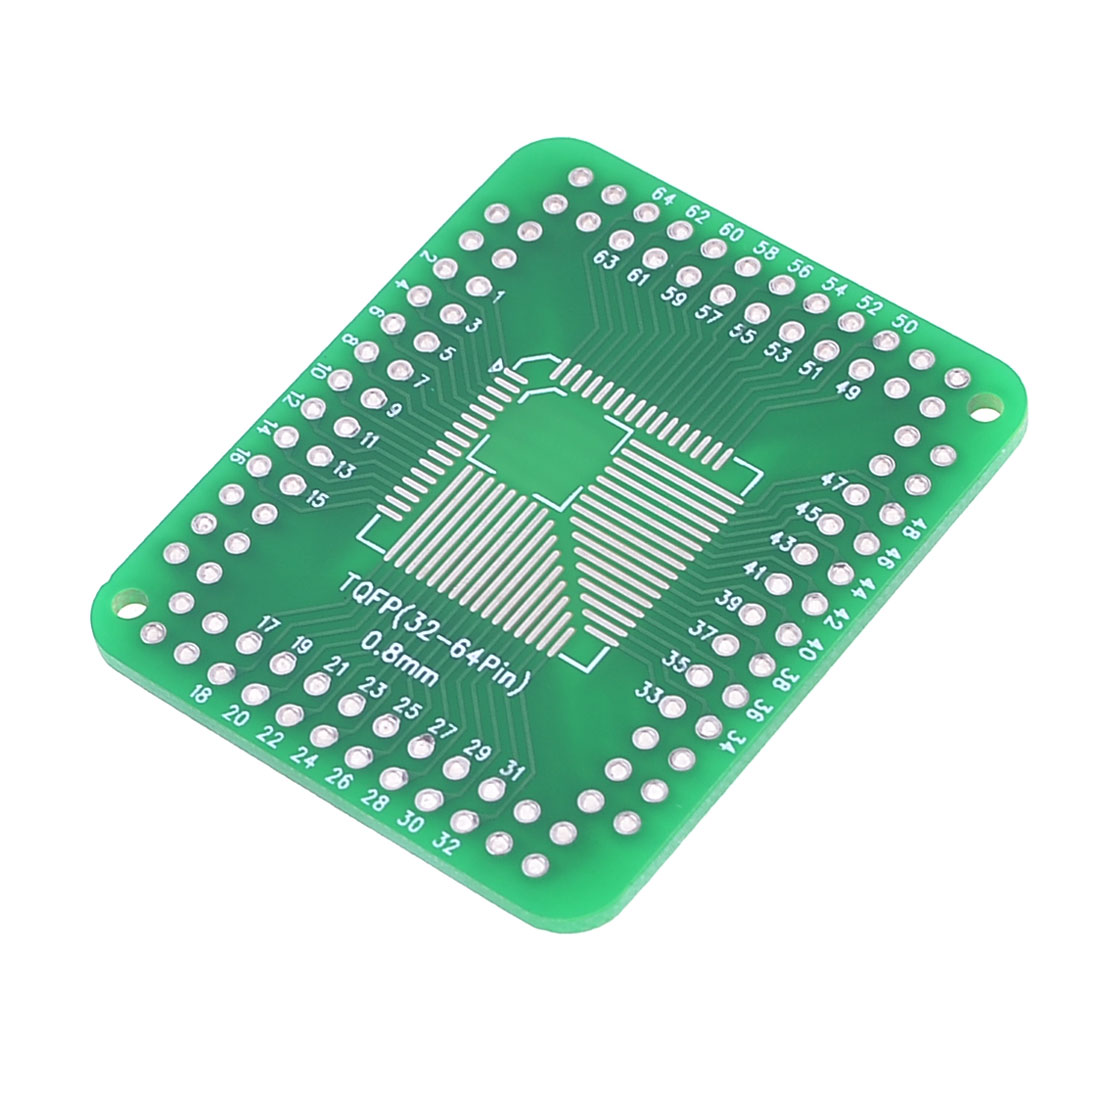 QFP/FQFP/TQFP/LQFP to DIP Adapter PCB Board Converter Double Side